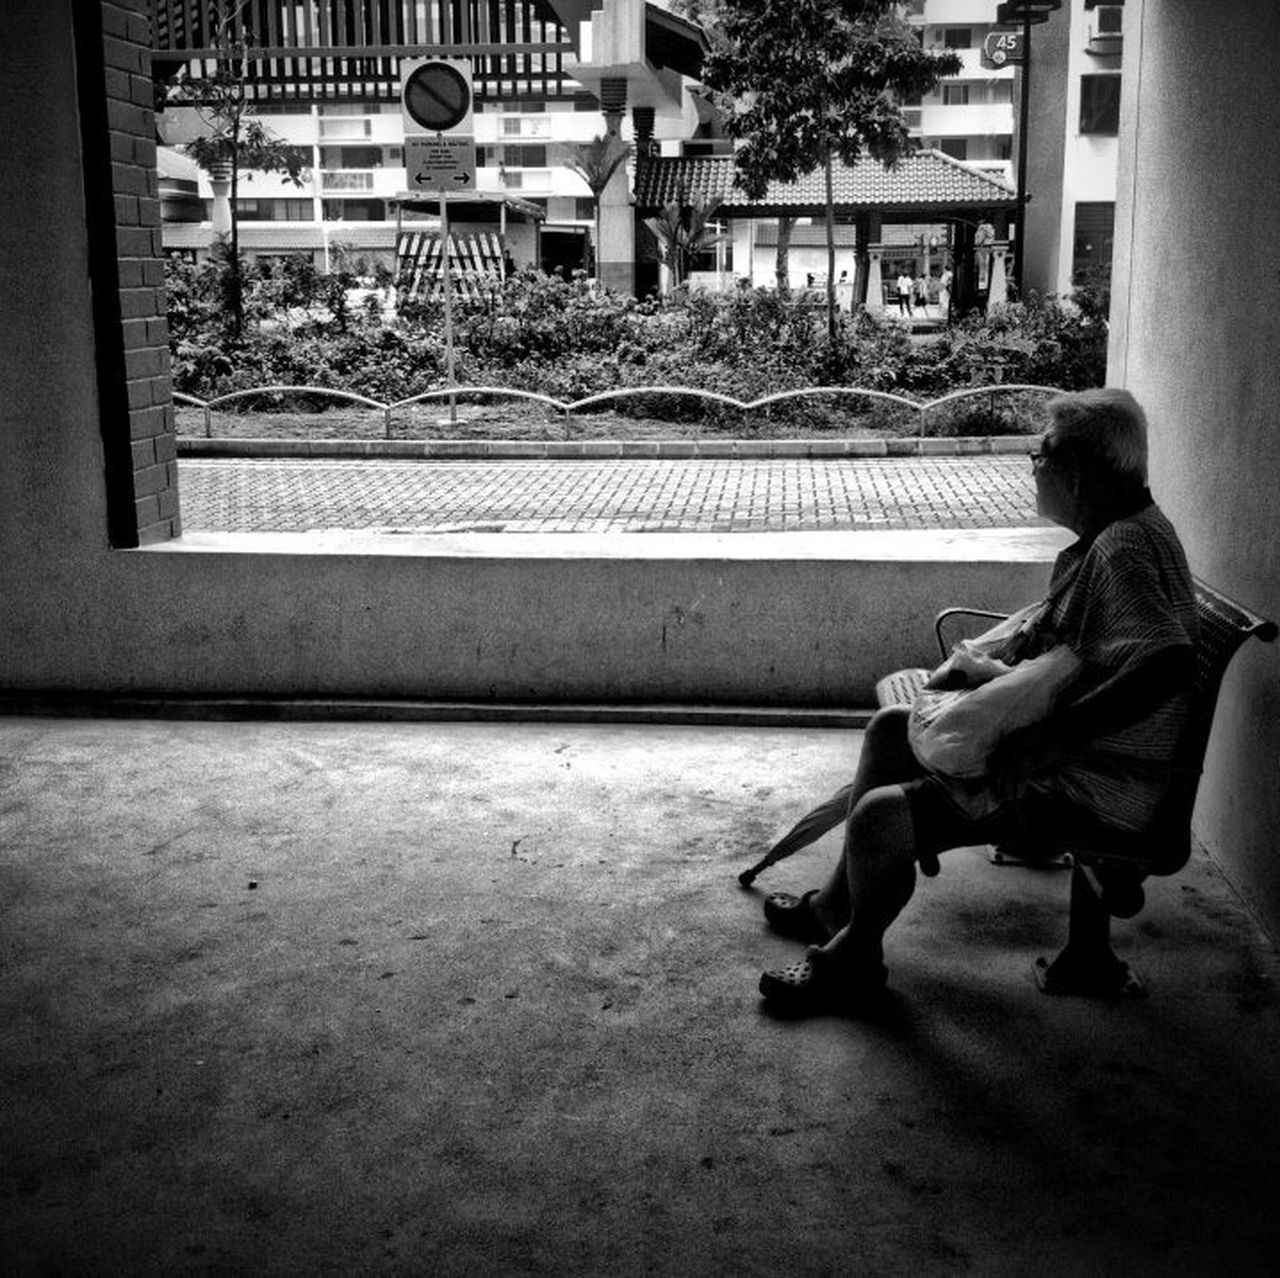 Blackandwhite Streetphotography Streetphoto_bw Street Photography People Snapshots Of Life B&W Portrait Old Man Resting Bench Void Deck